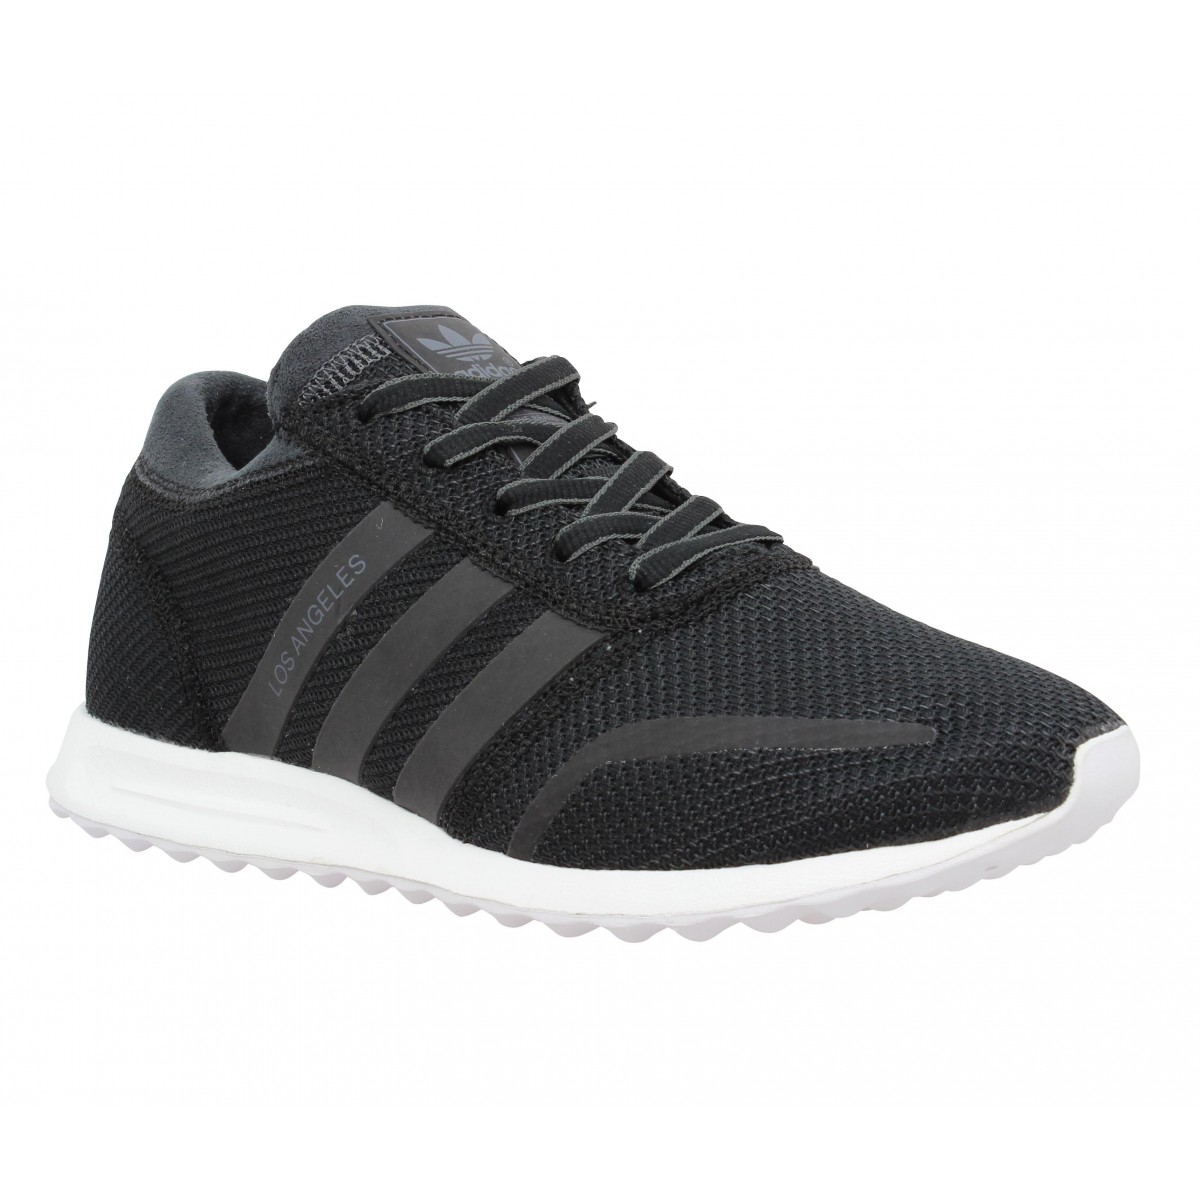 Baskets ADIDAS Los Angeles toile Homme Noir